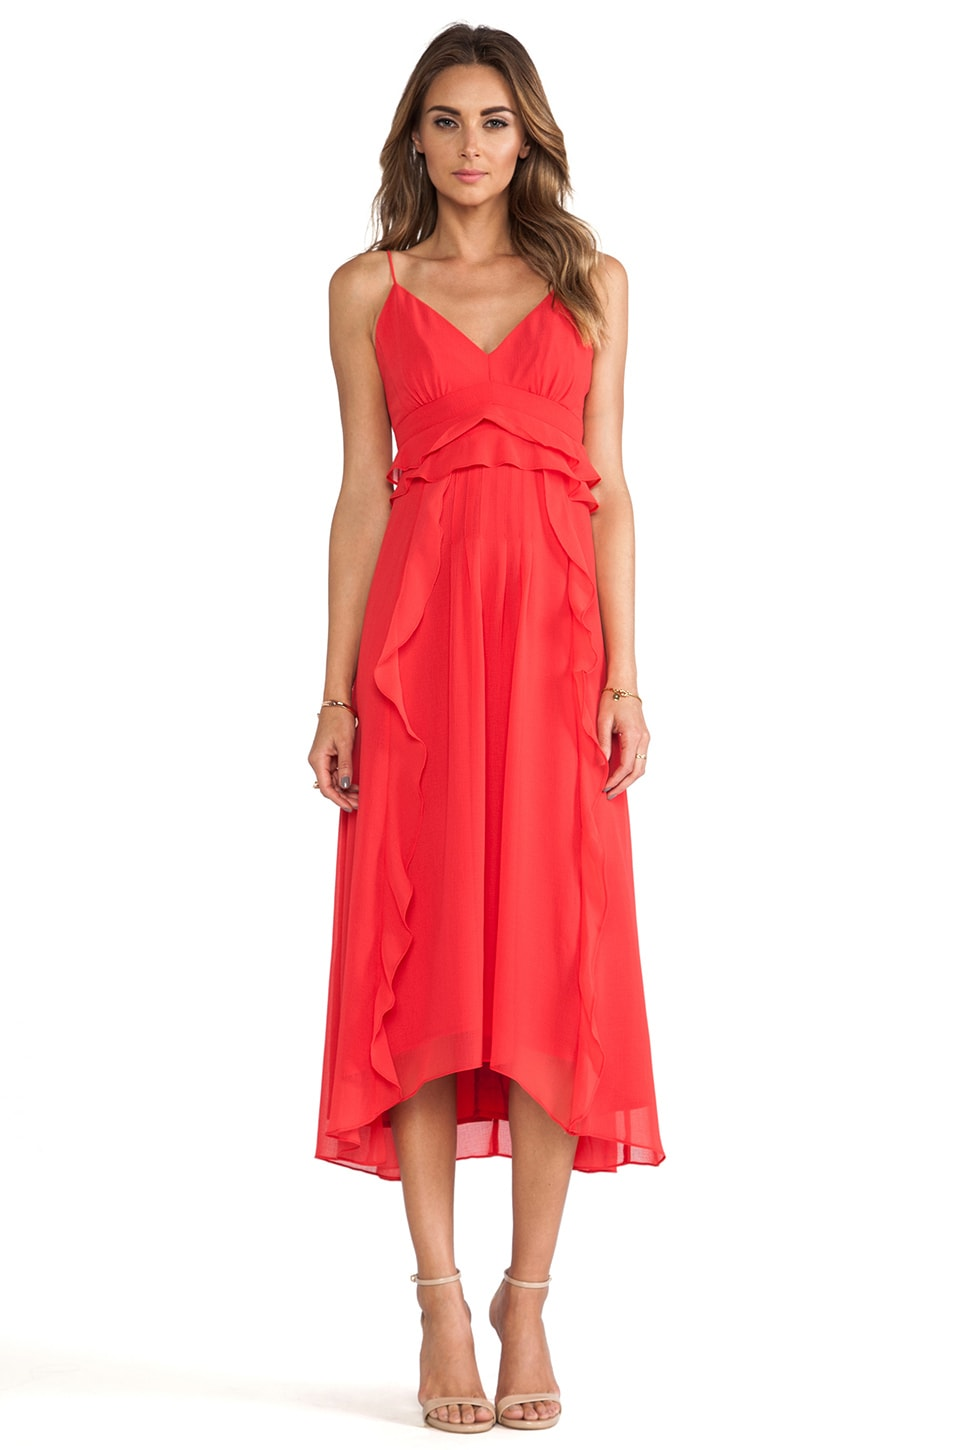 Nanette Lepore Dreamer Dress in Poppy Red